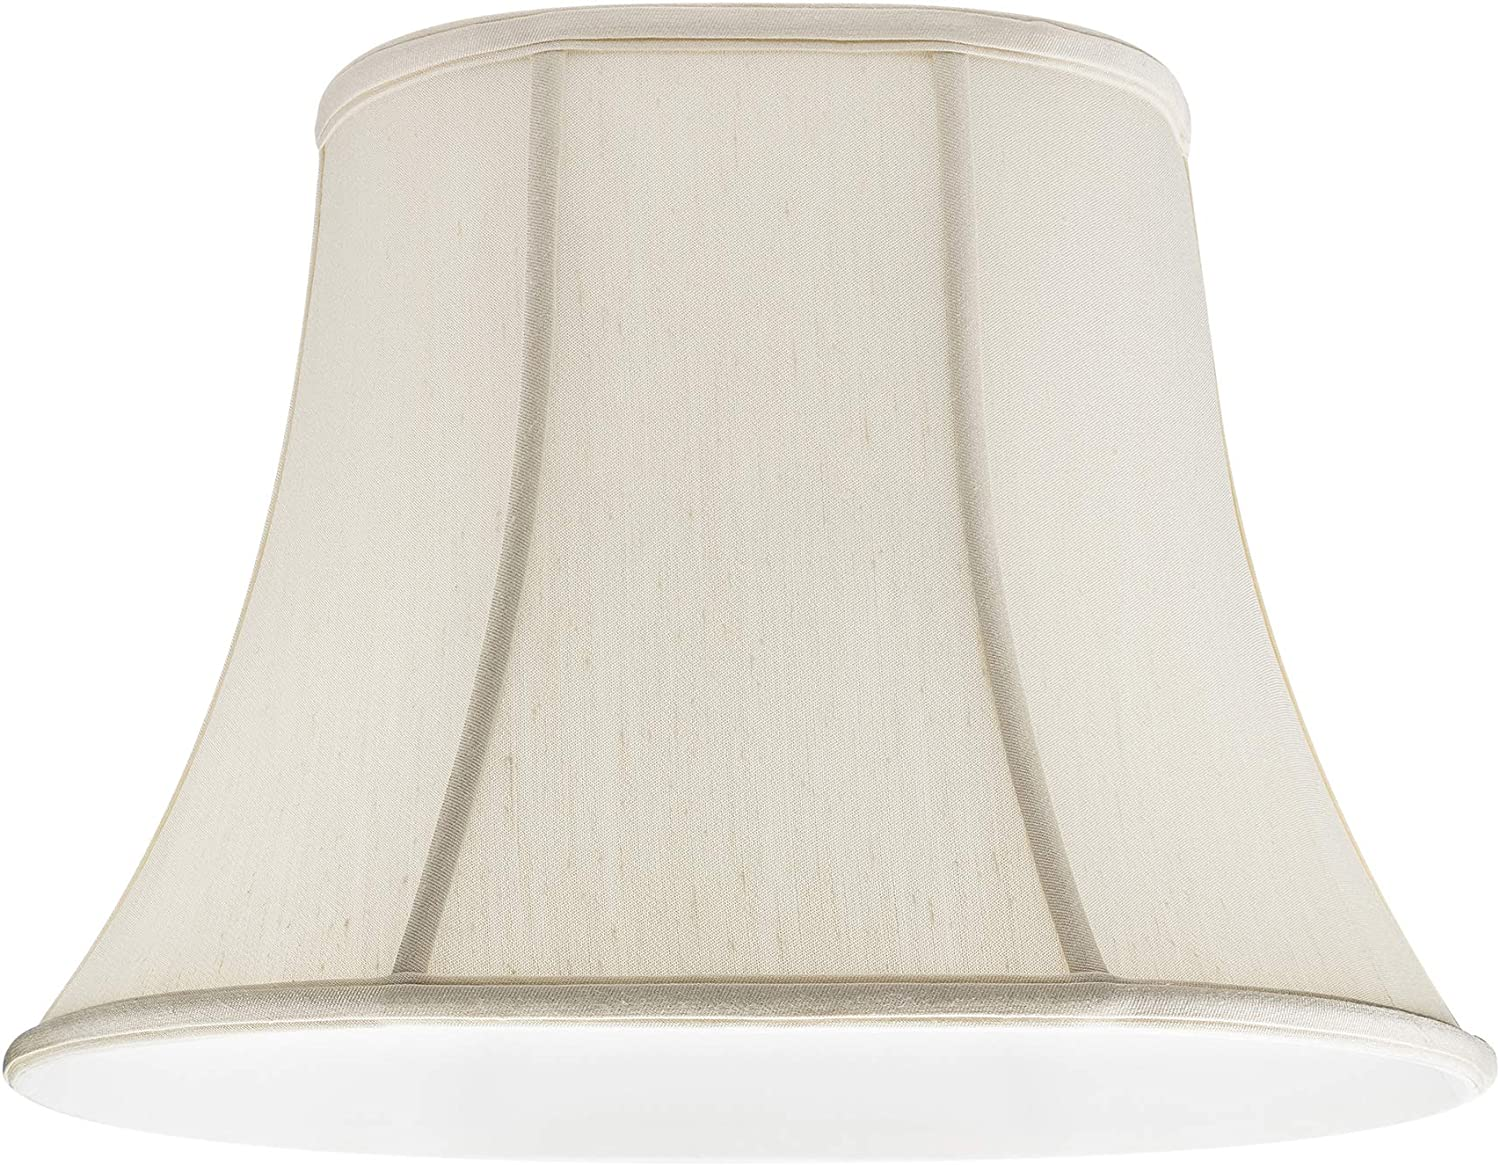 Upgradelights Off White Silk Shantung Oval Bell Lamp Shade